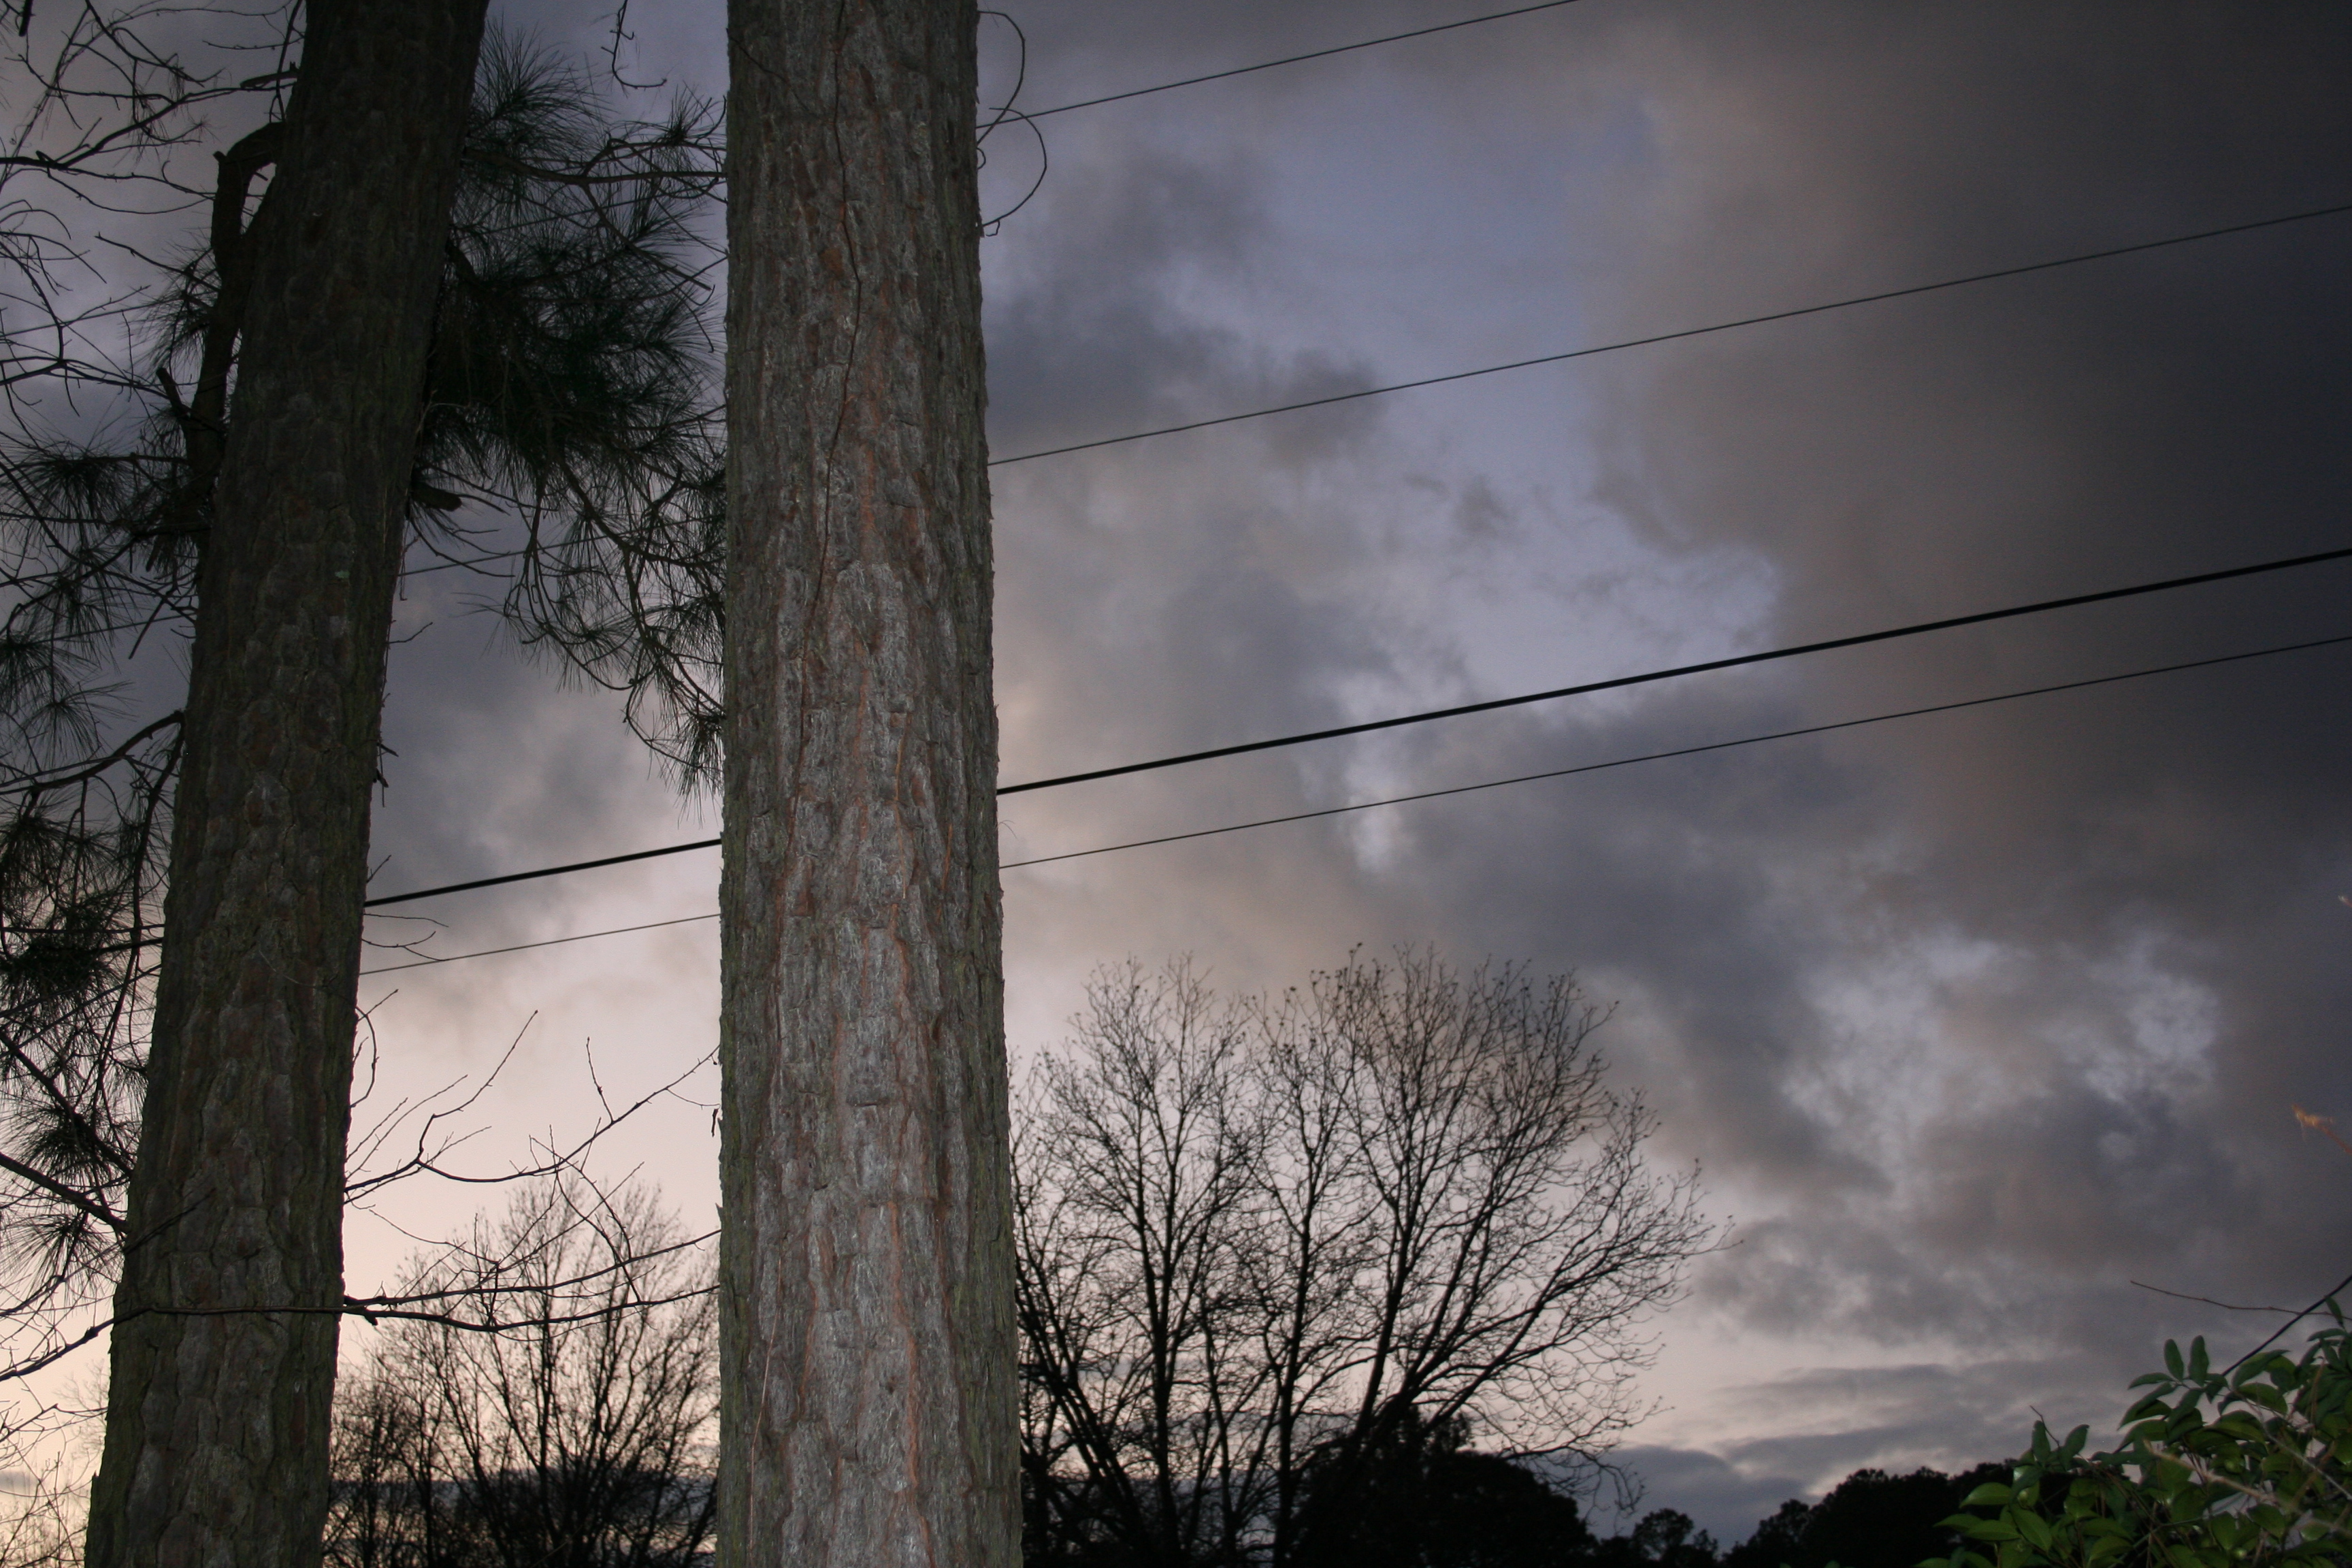 Dusk Sky with Powerlines and Pines